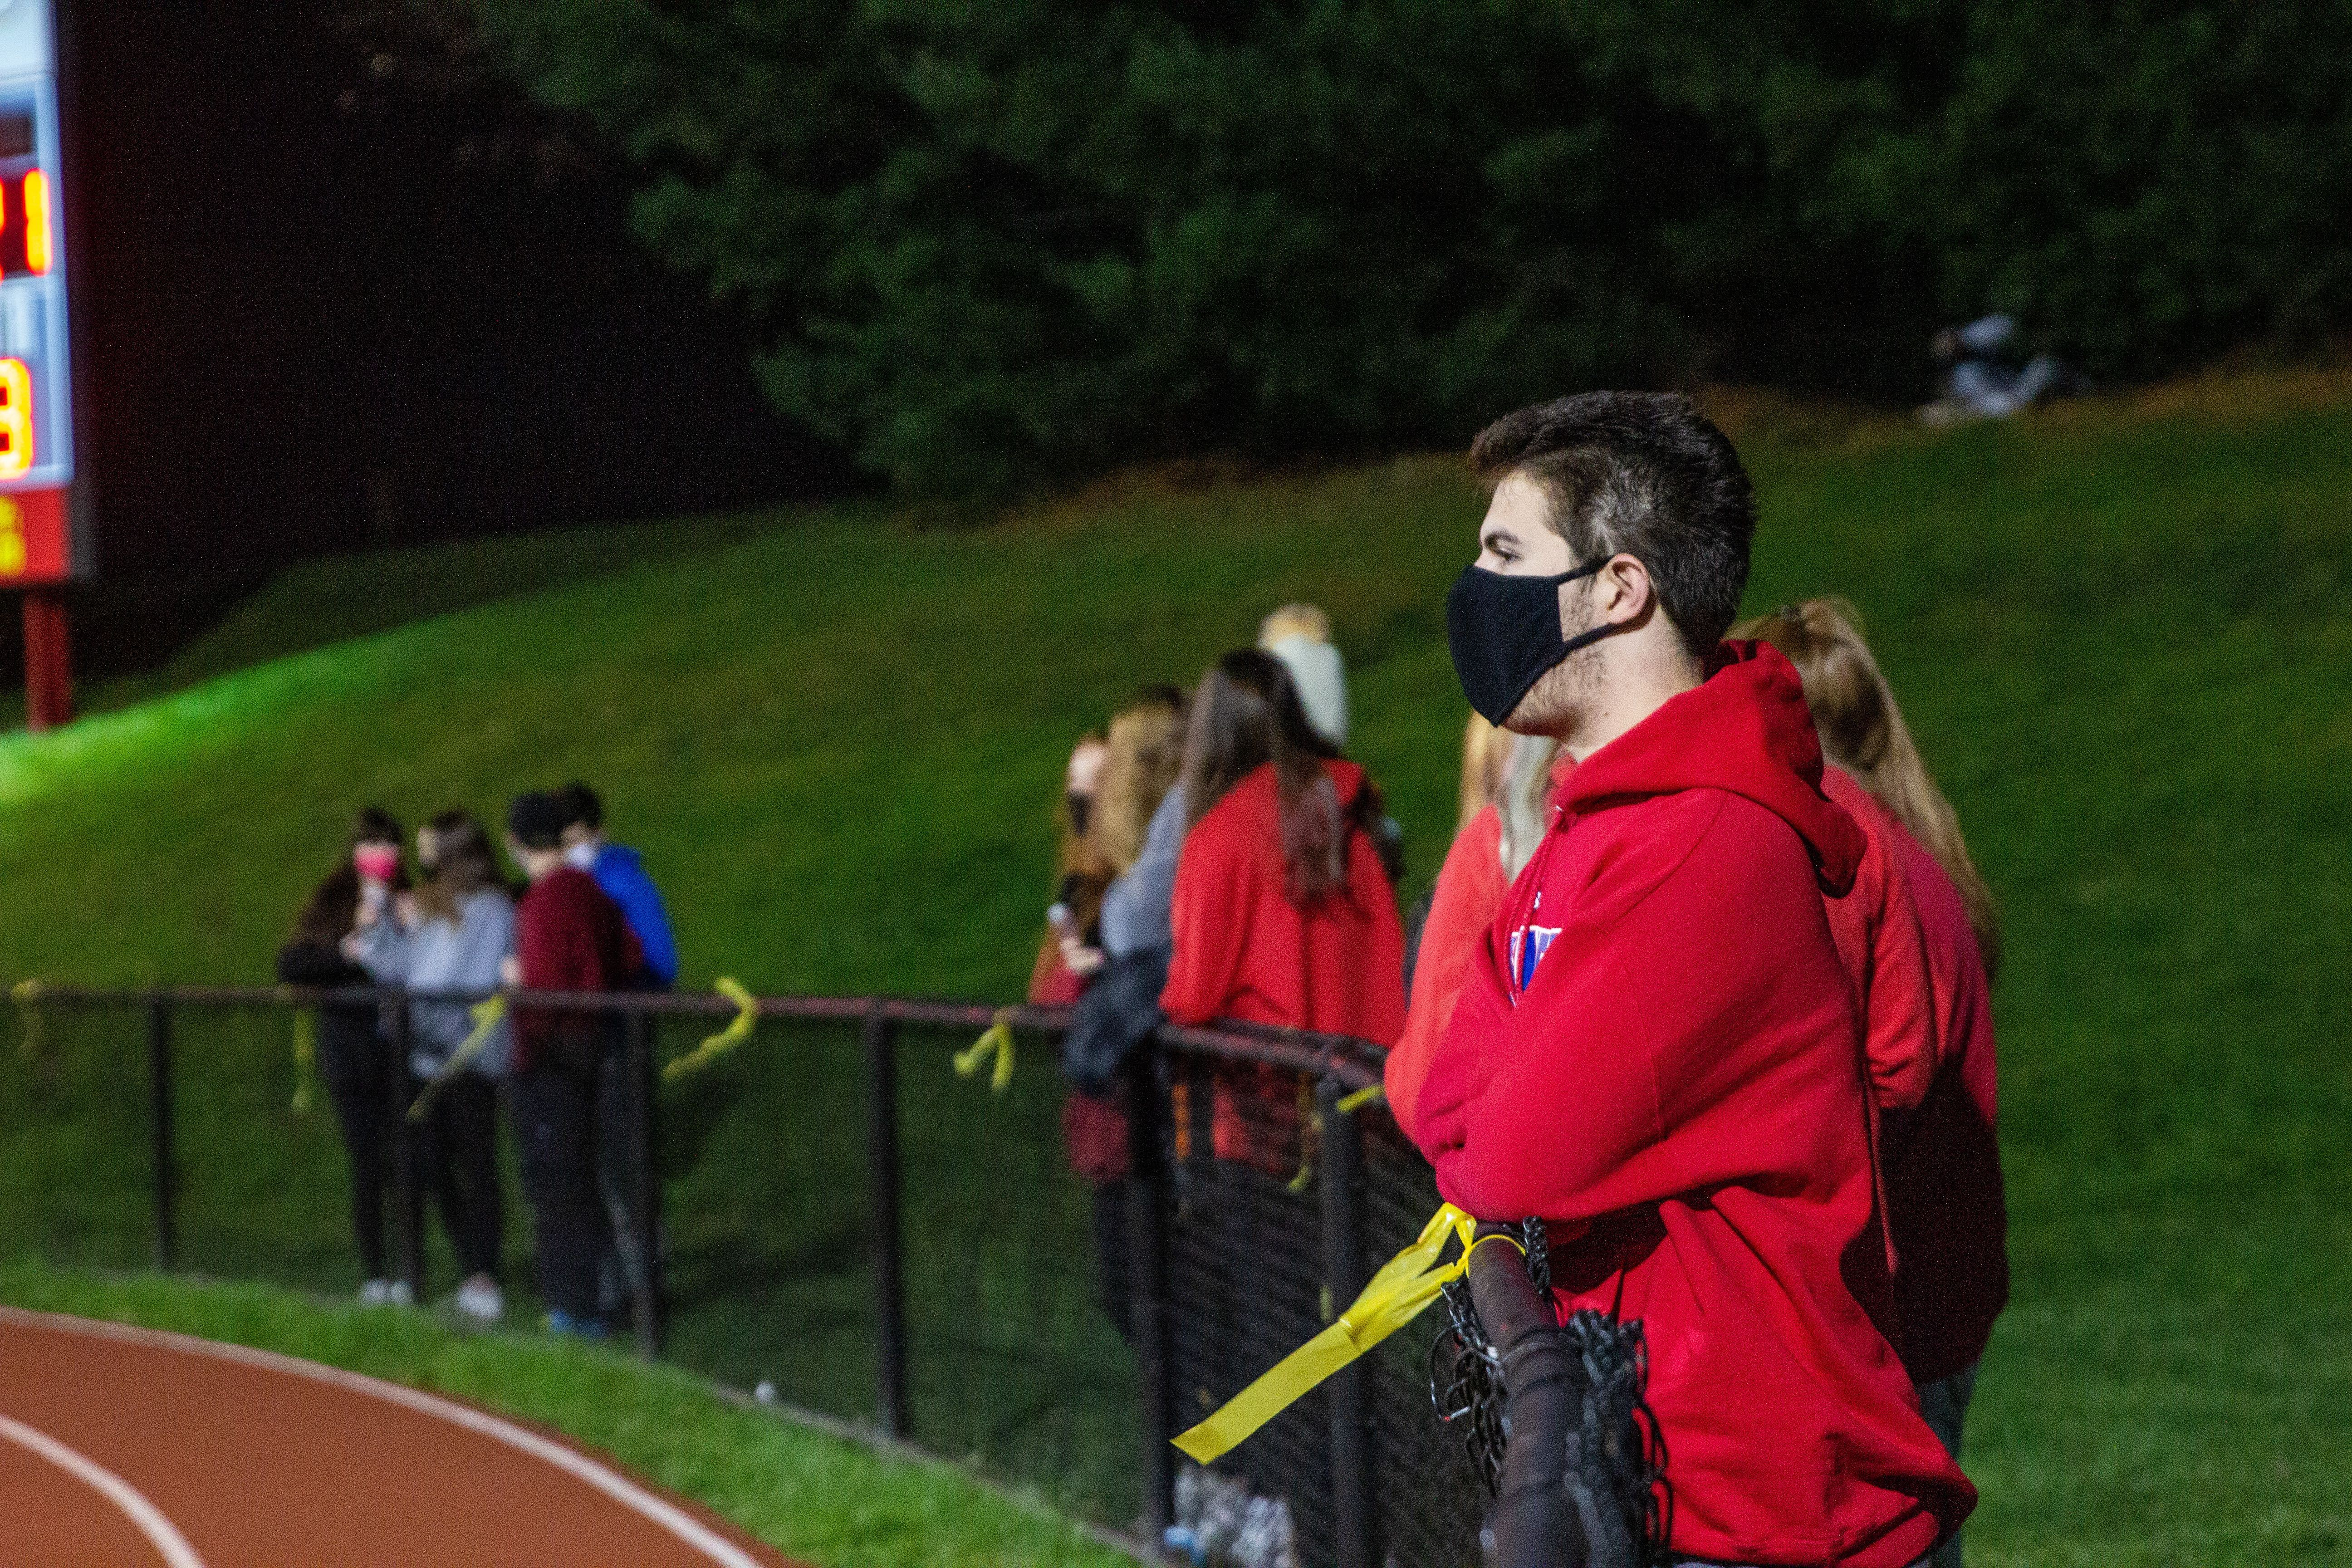 Student spectators from Penncrest High School watch the Media Bowl masked and distanced Friday.